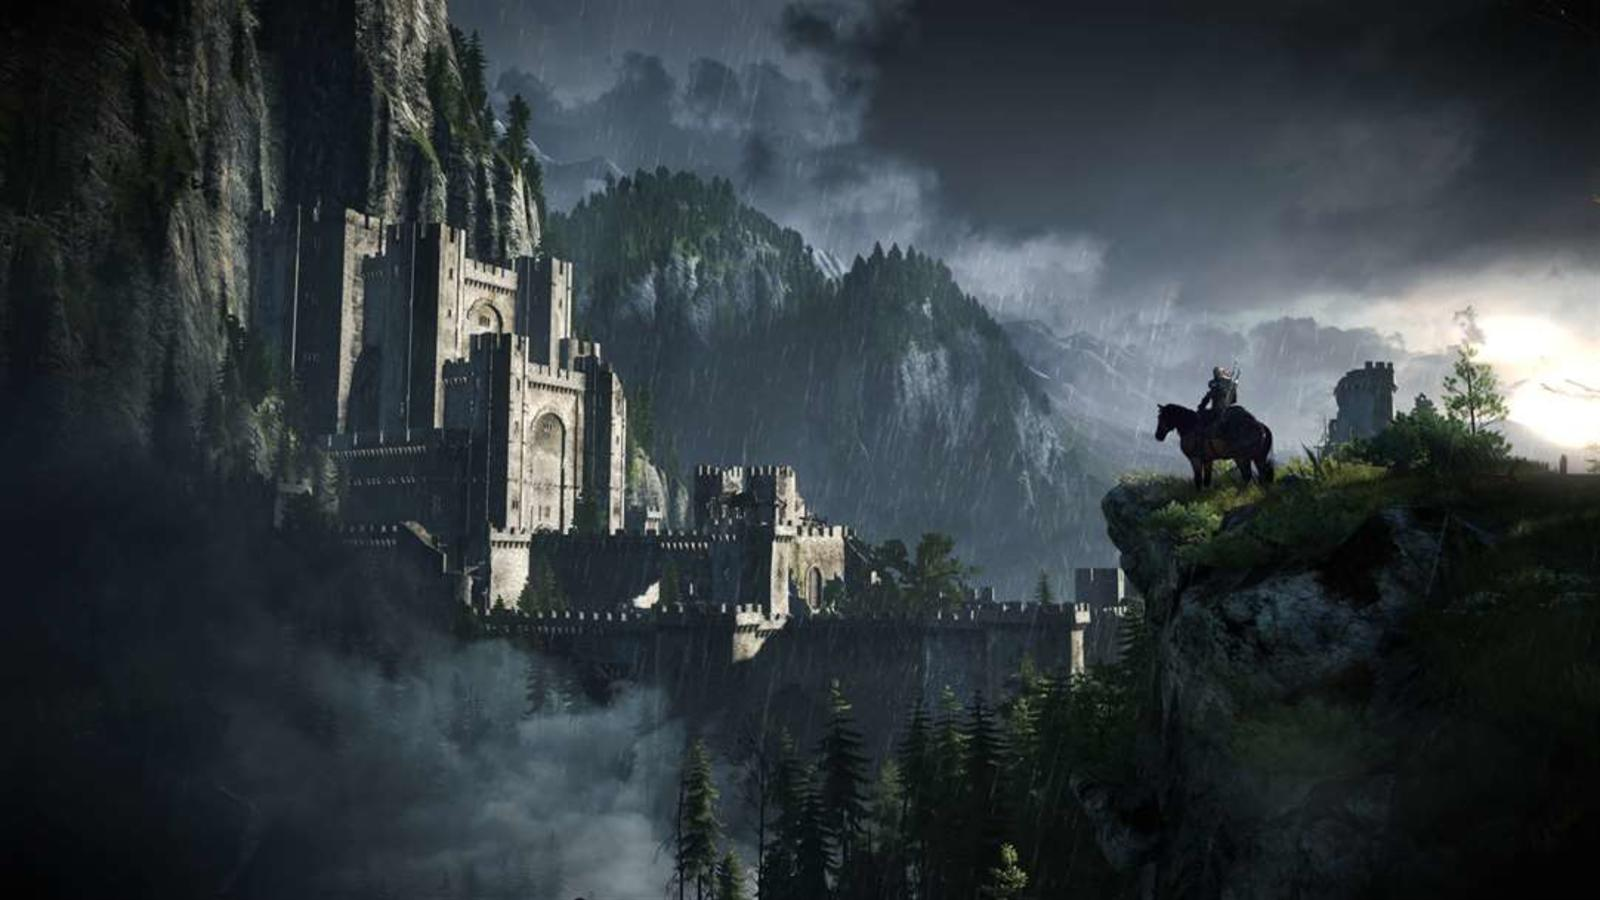 Best Rpg 2019 Xbox One Best RPG Games on Xbox One in 2019 | TechnoBuffalo